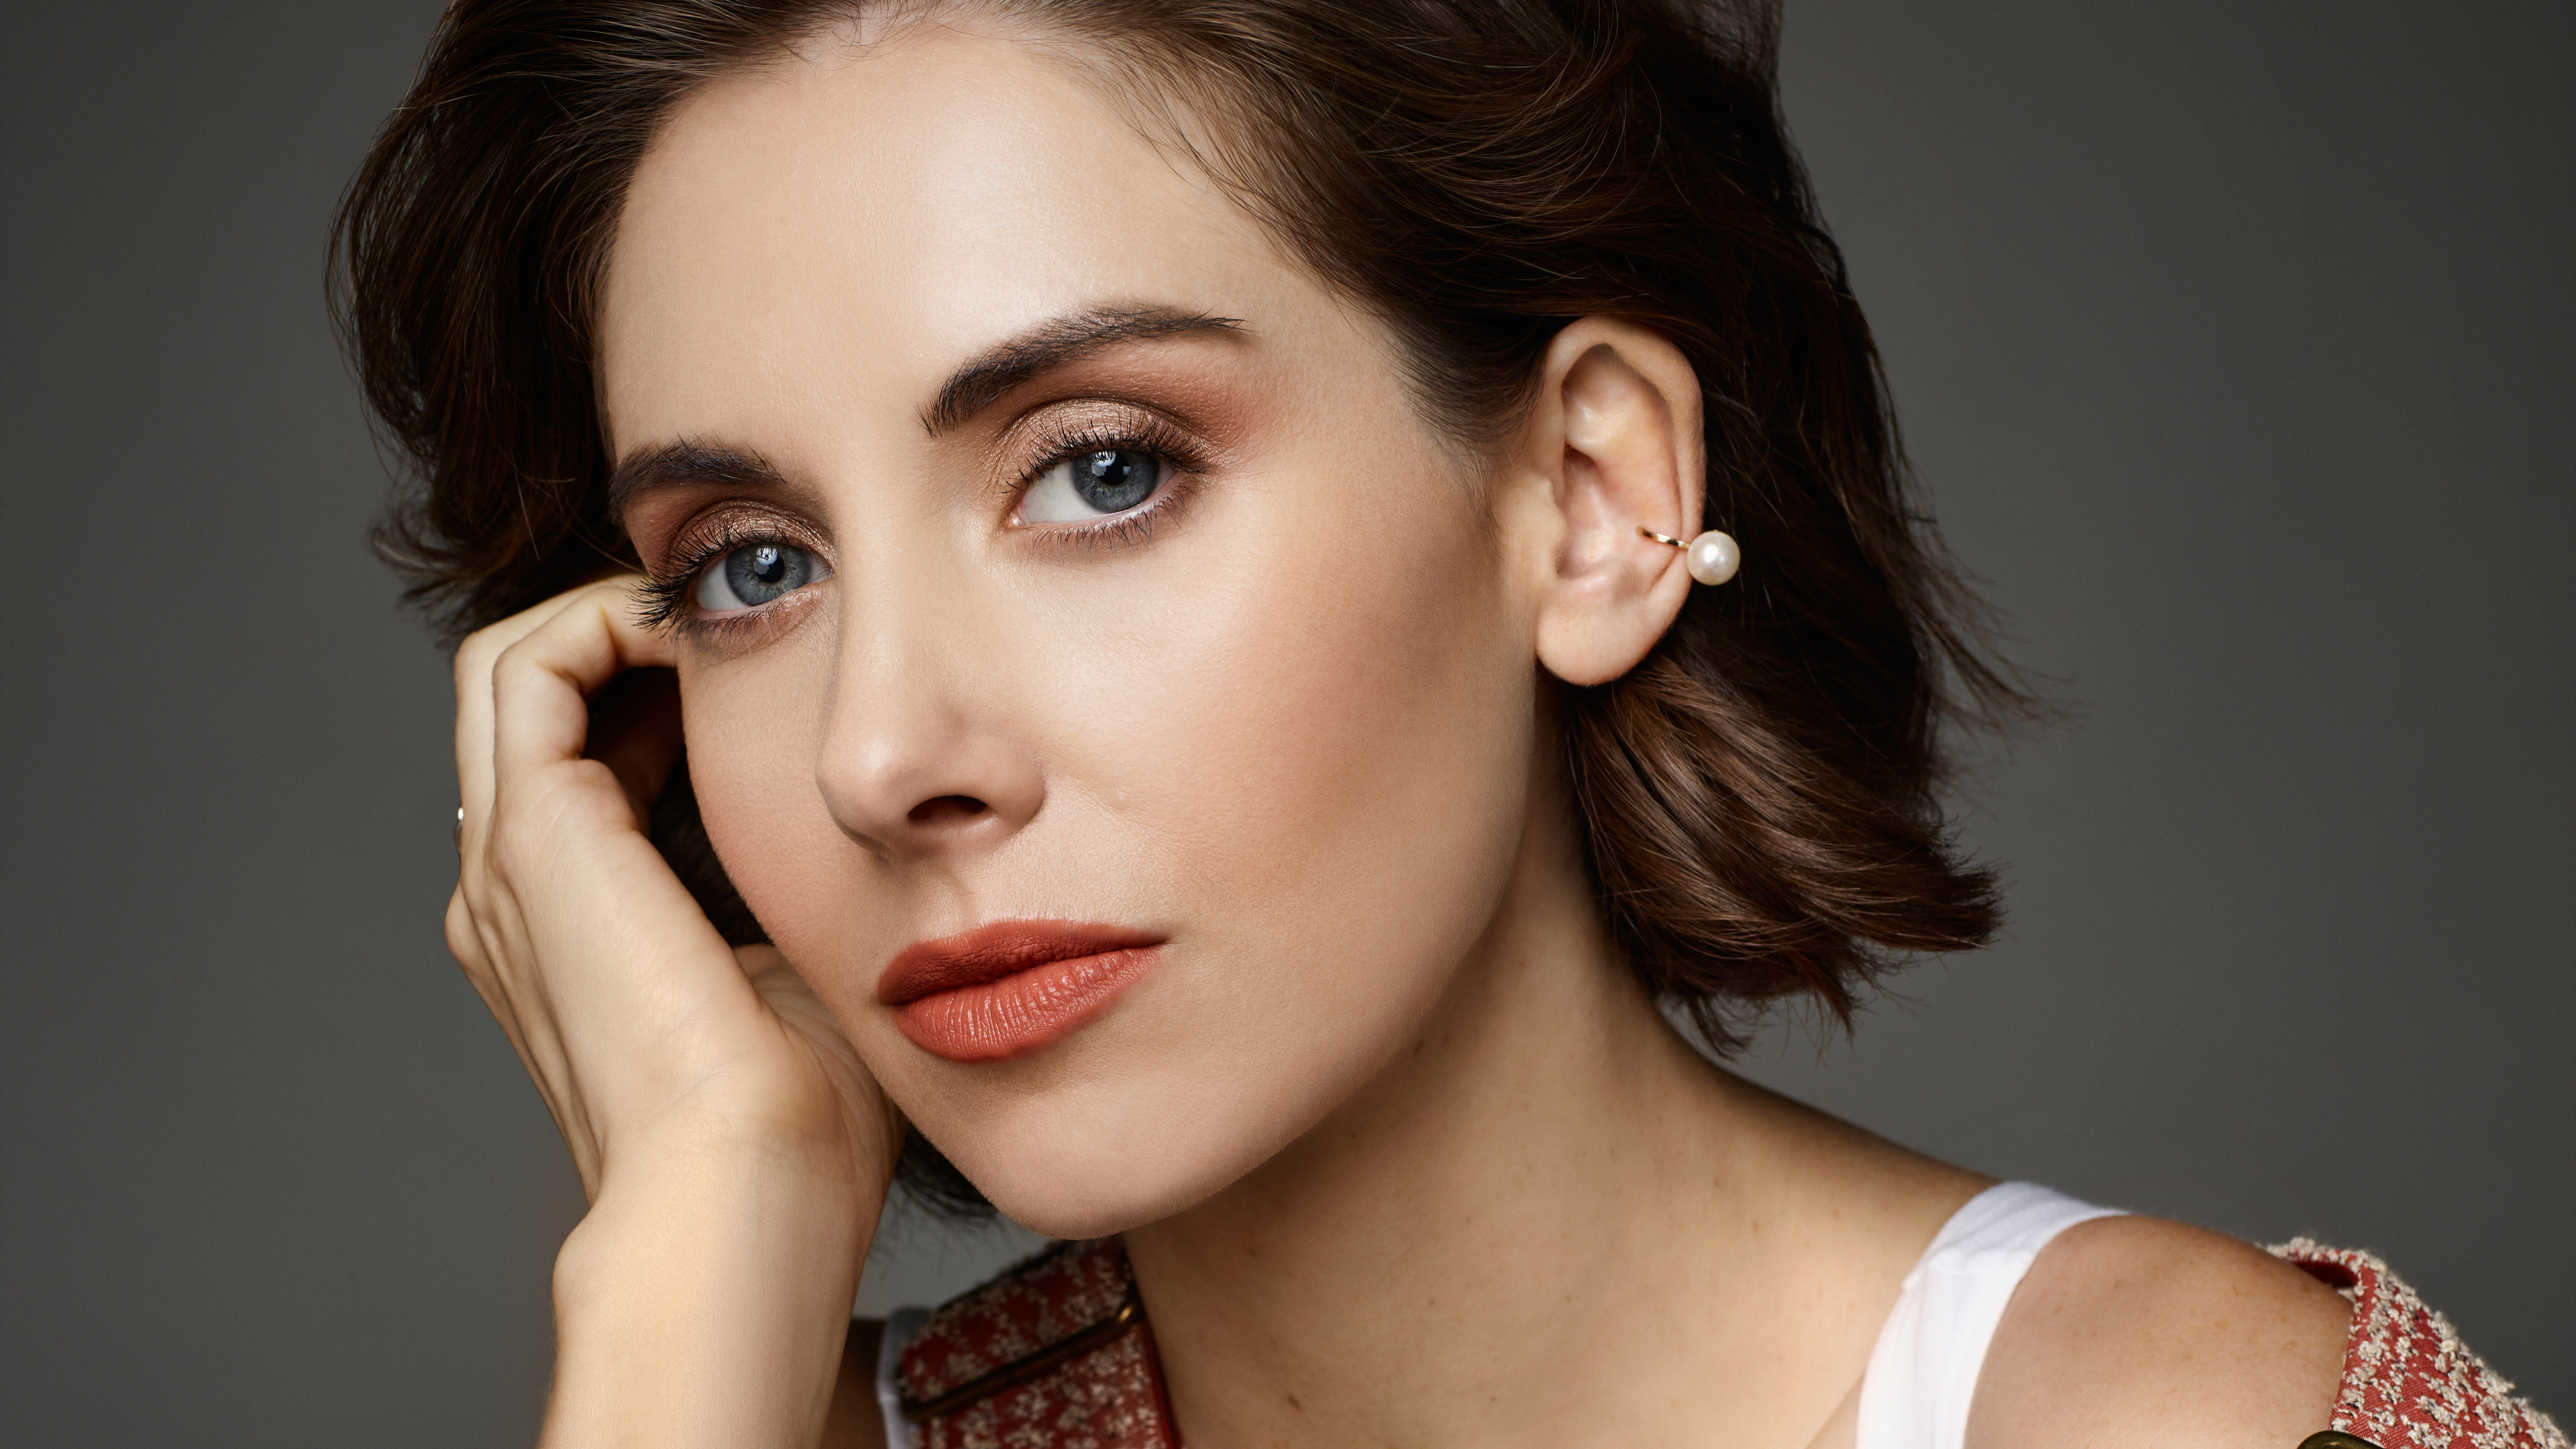 alison brie 2019 1563222448 - Alison Brie 2019 - hd-wallpapers, girls wallpapers, celebrities wallpapers, alison brie wallpapers, 5k wallpapers, 4k-wallpapers